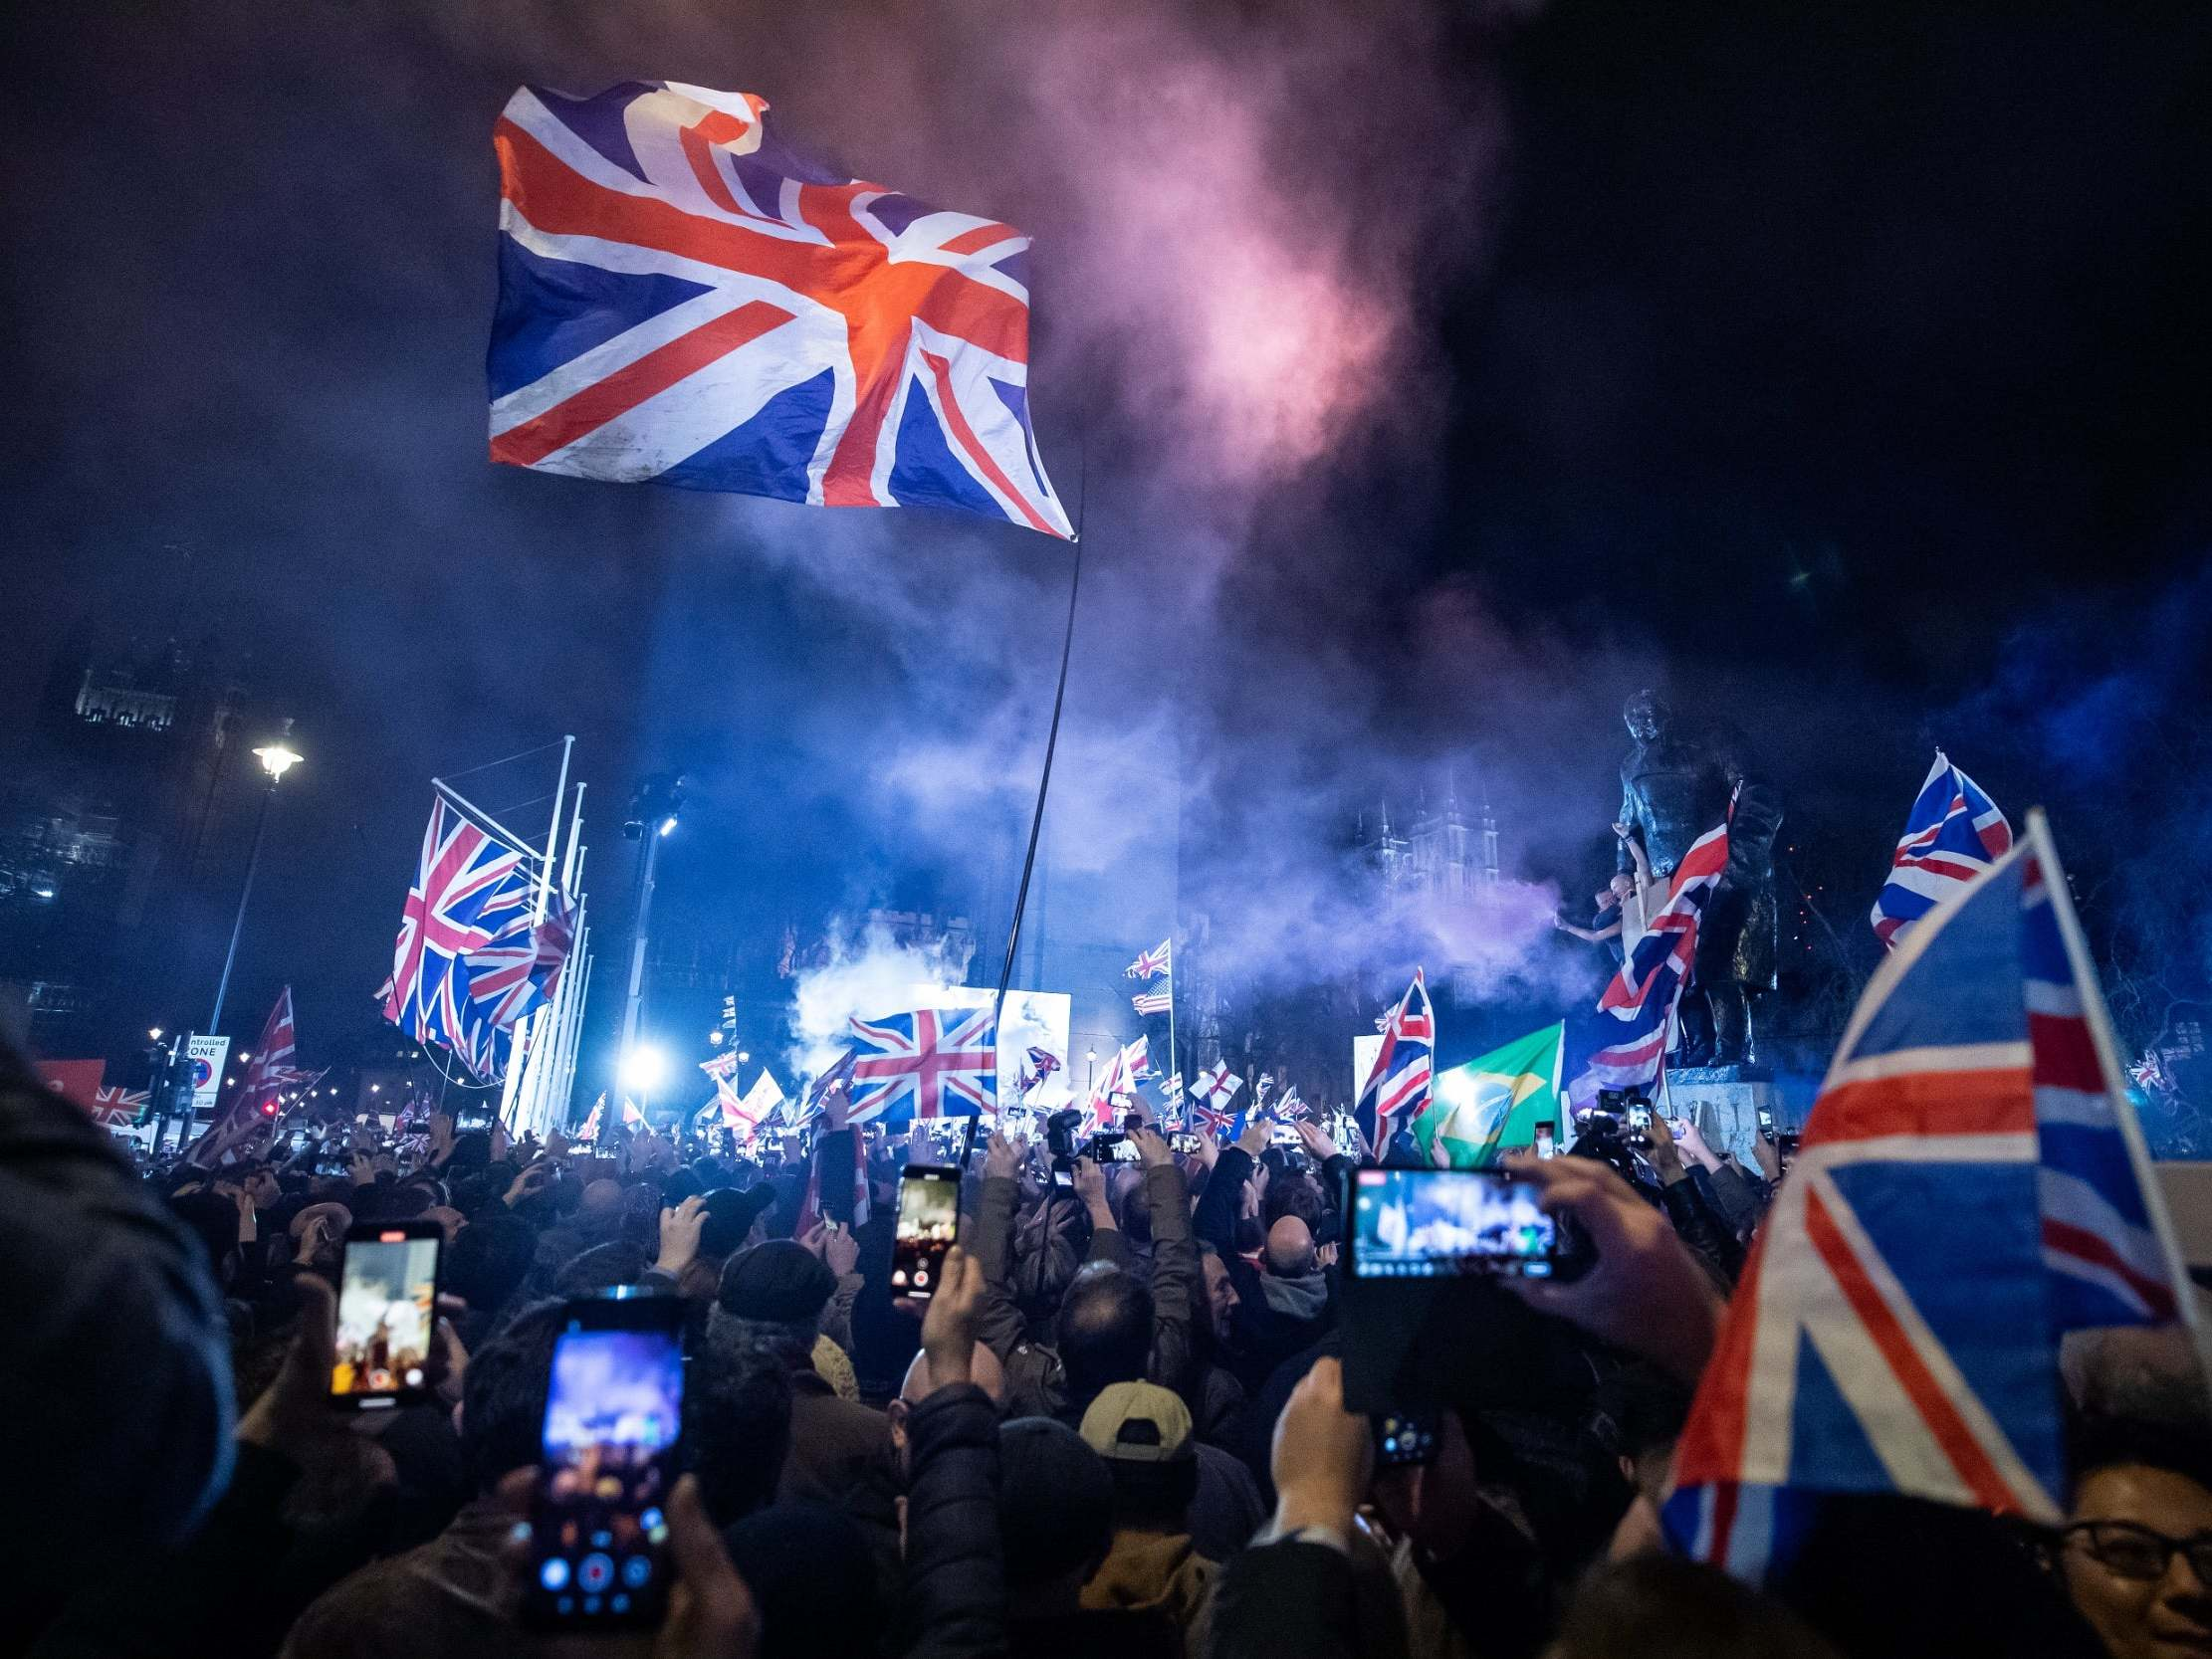 If you think Brexiteers are angry now, just wait until the wonders of Brexit fail to materialise